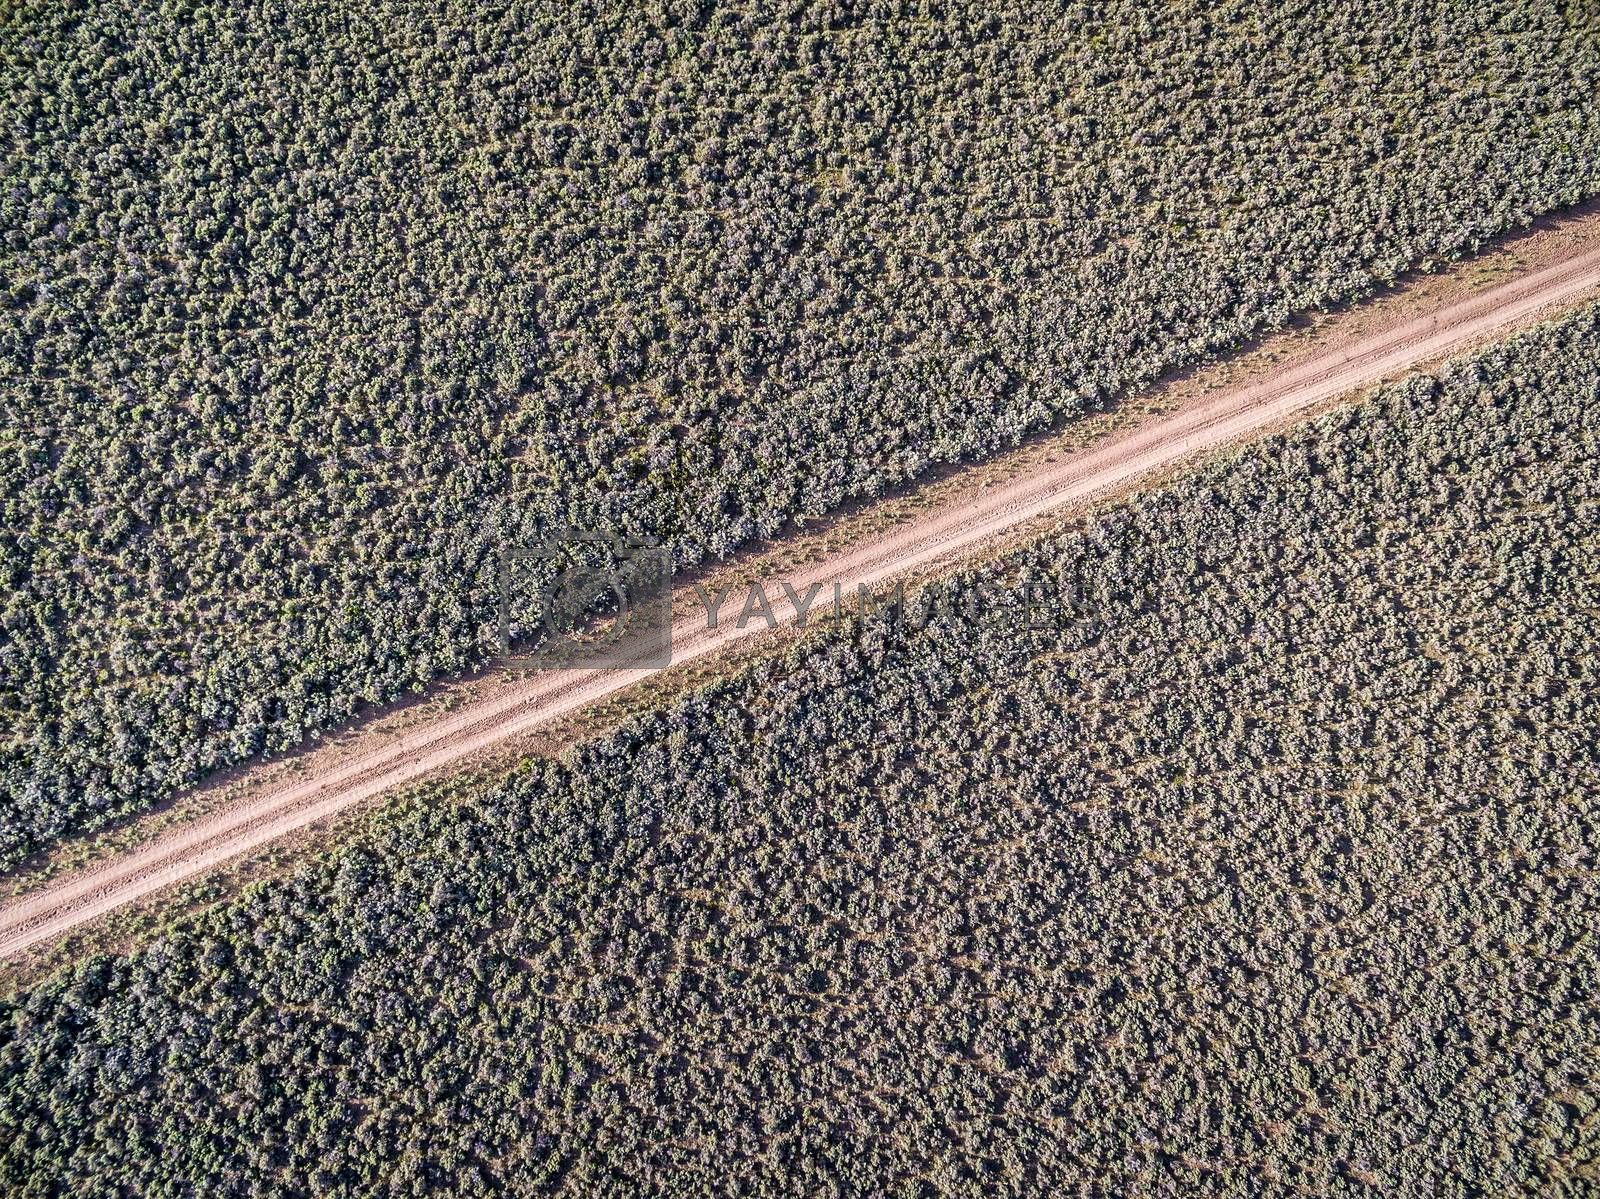 backcountry dirt road through fields covered by sagebrush - aerial view